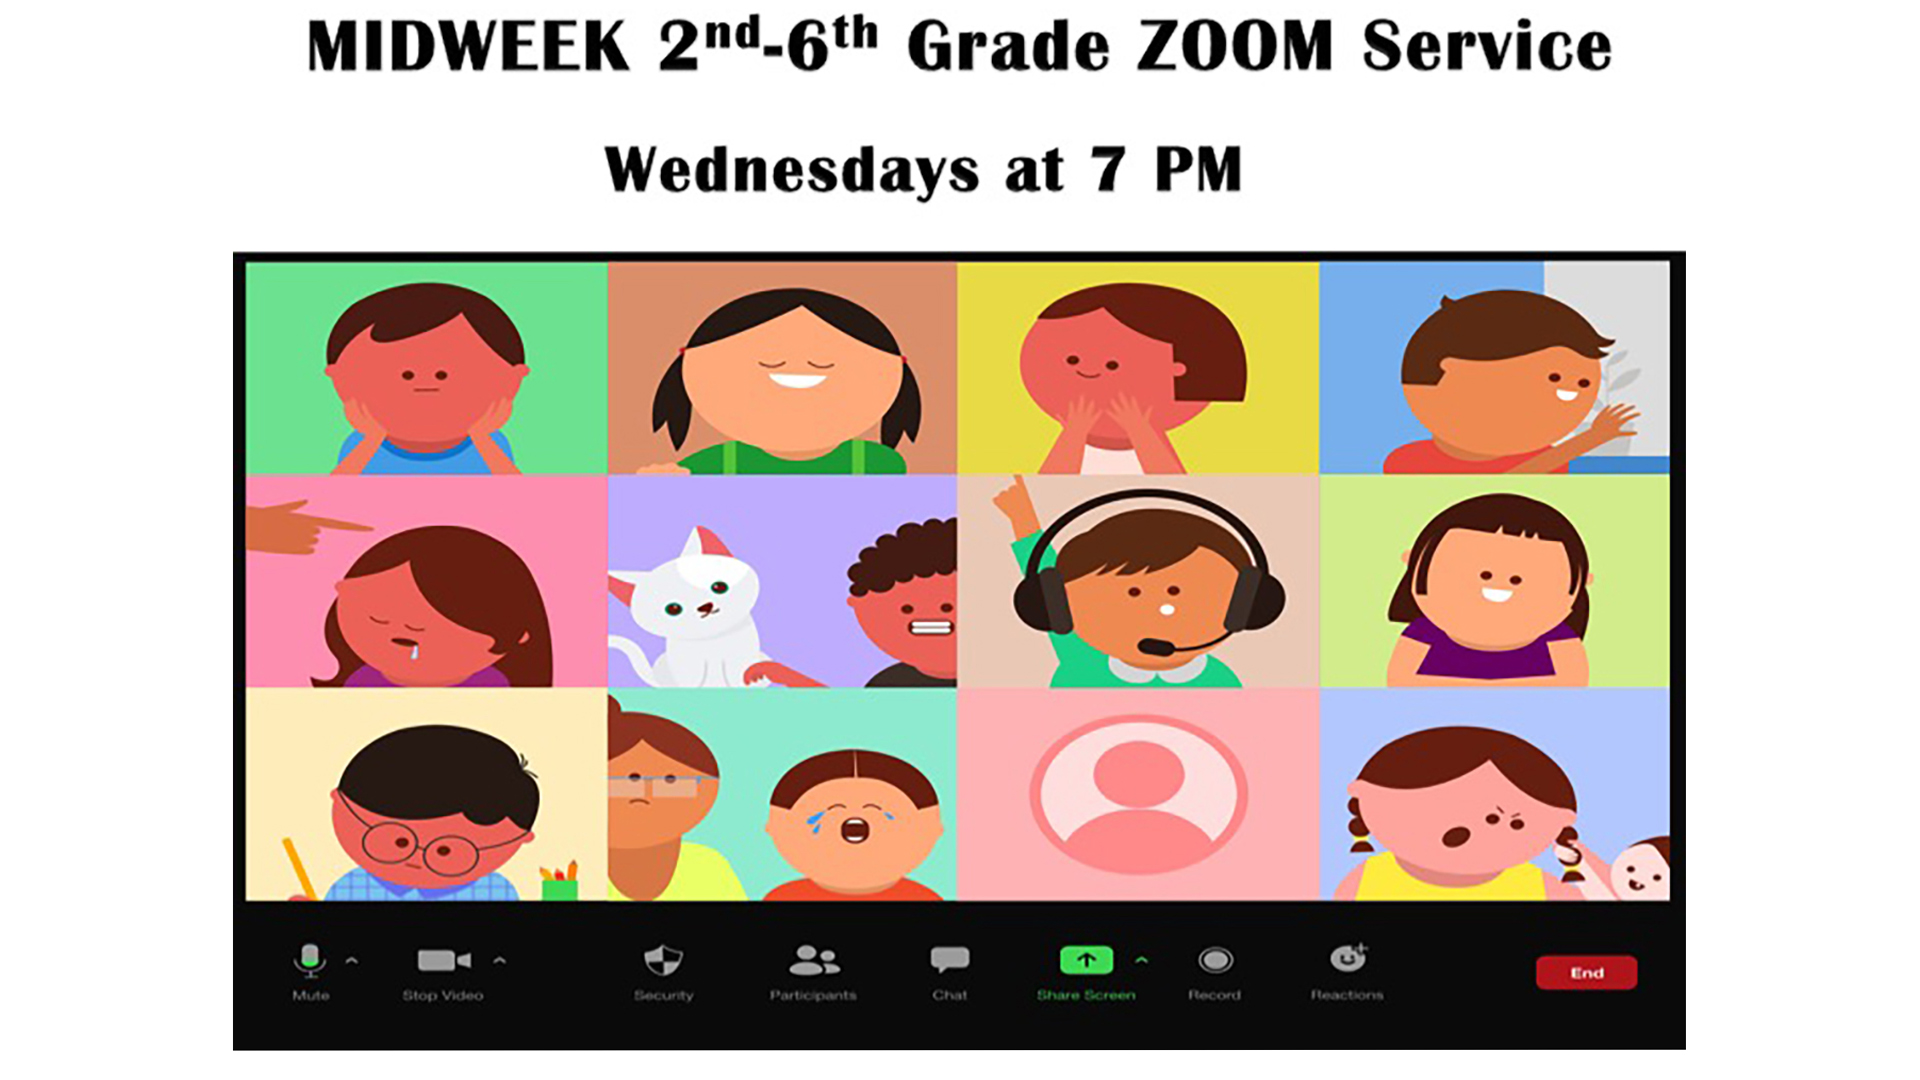 MIDWEEK 2nd-6th Grade ZOOM Service